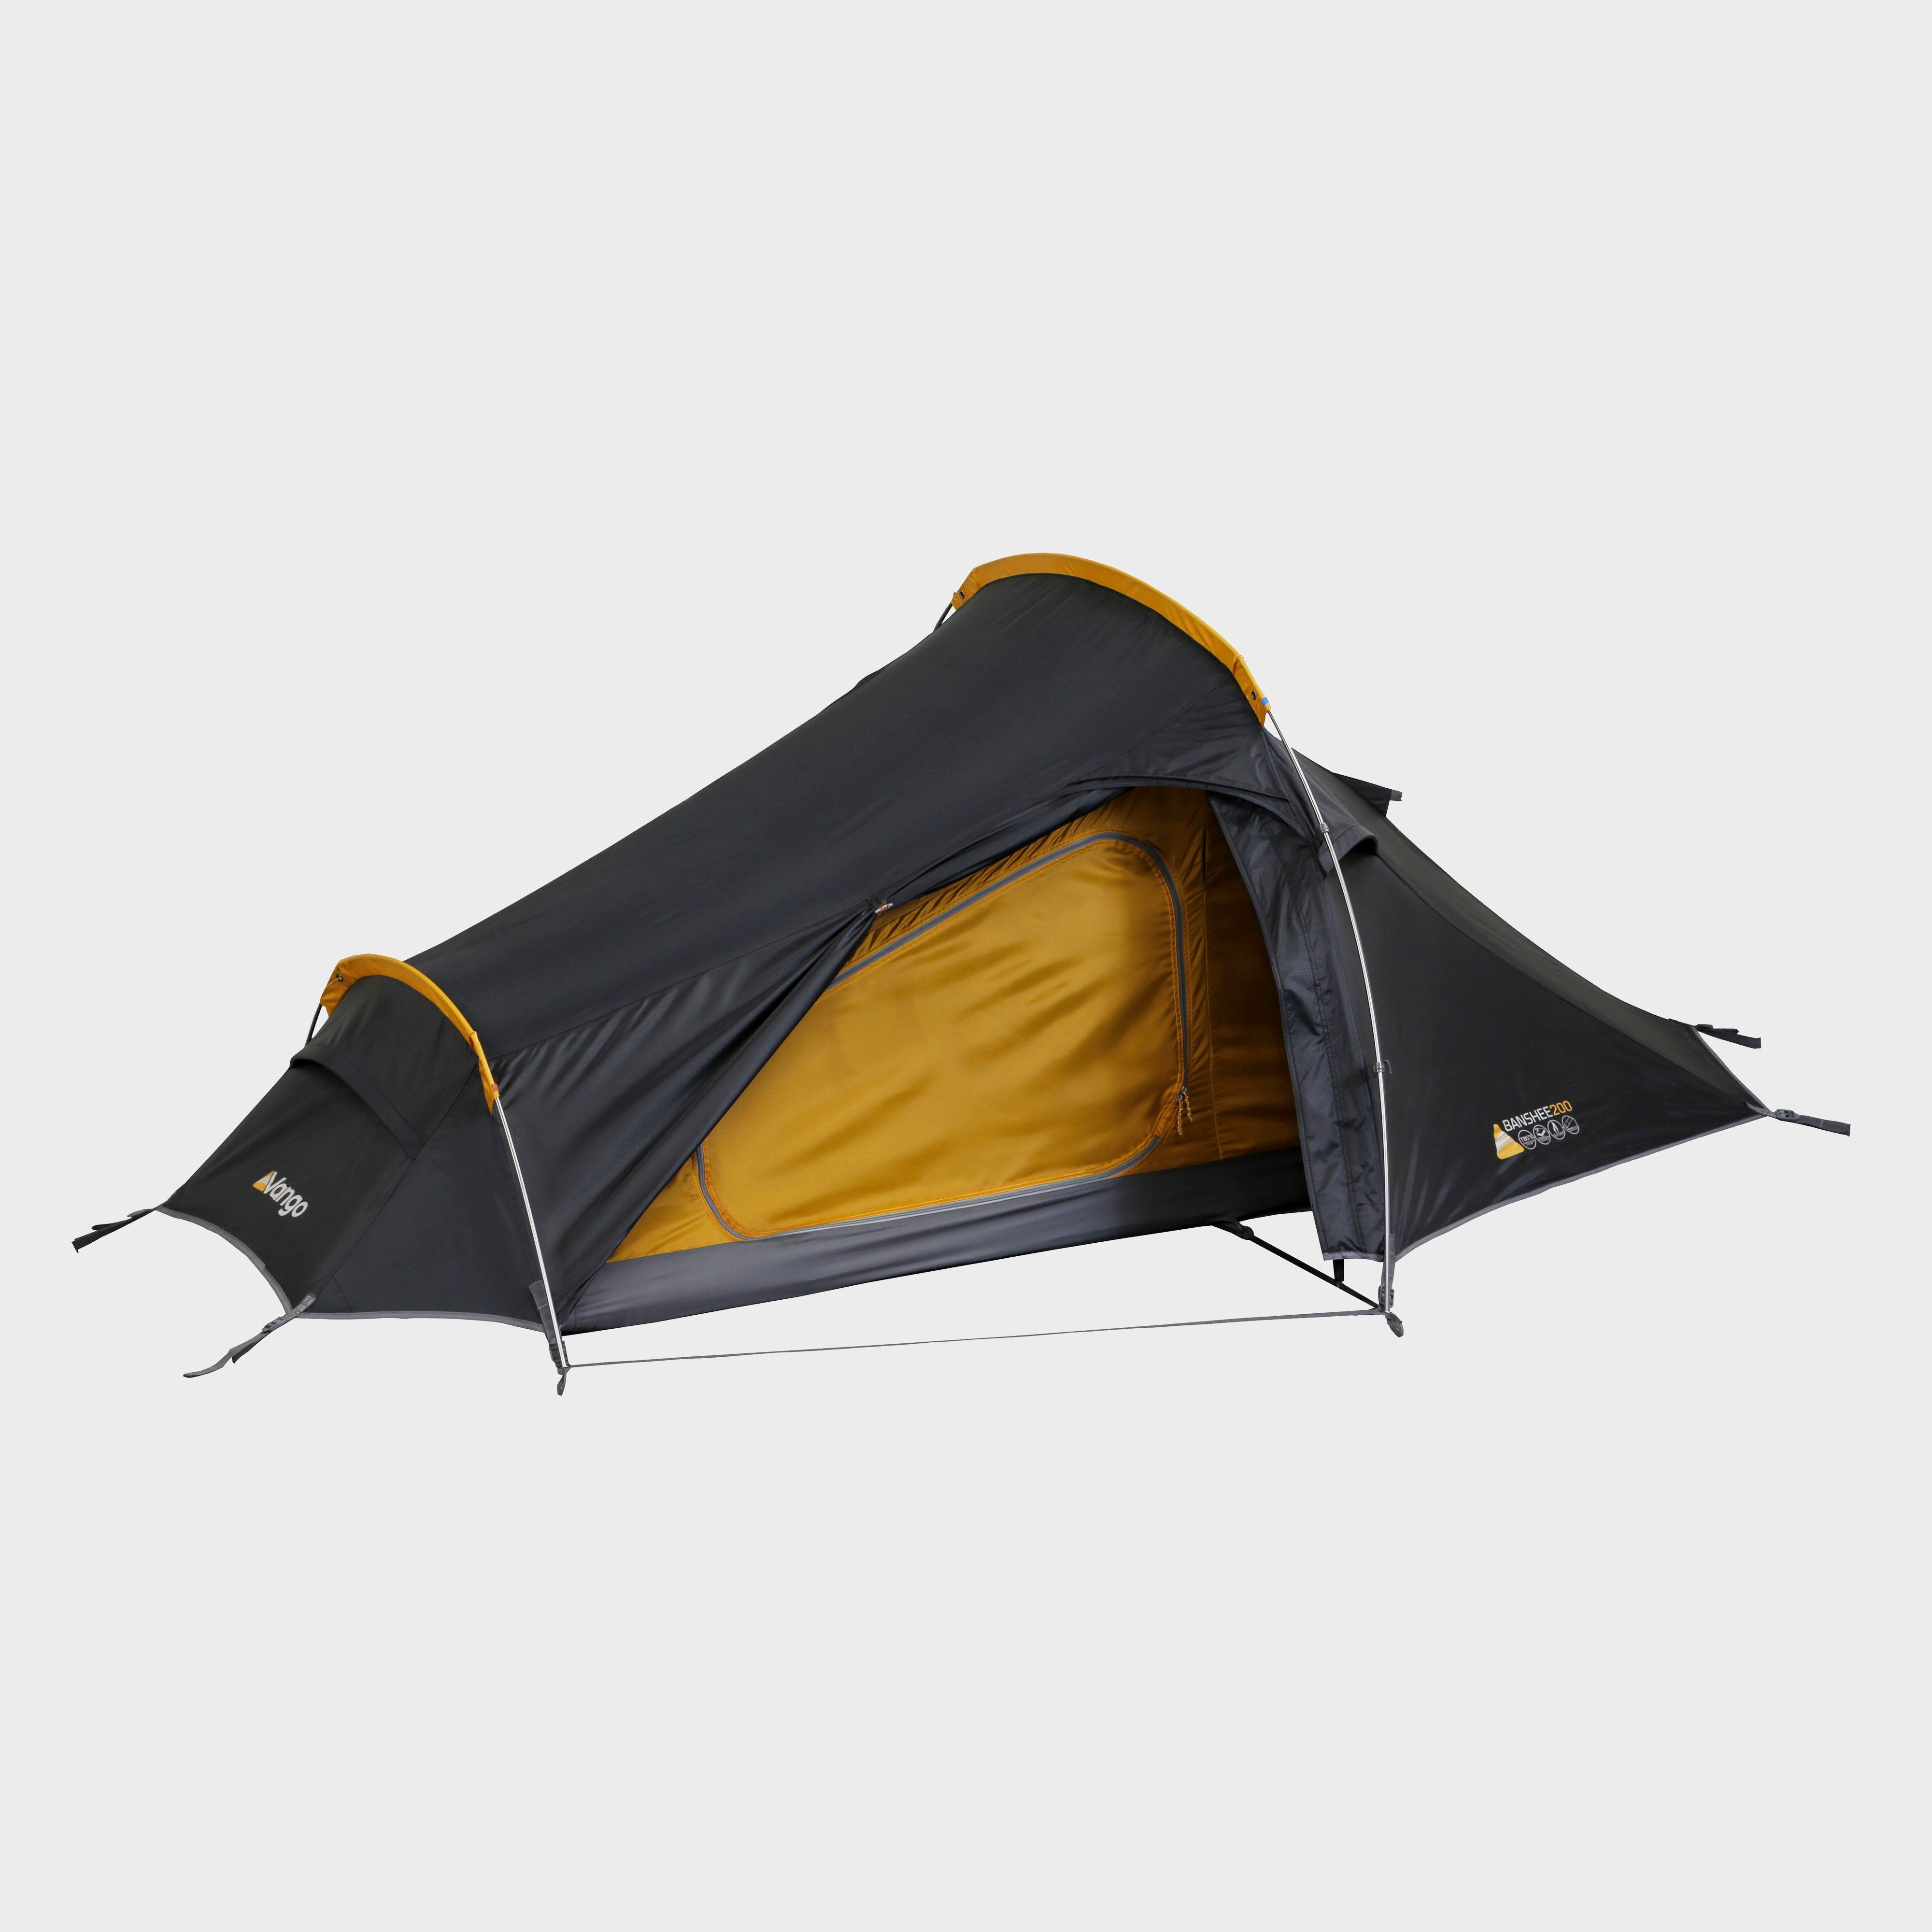 VANGO Banshee 200 2 Person Tent